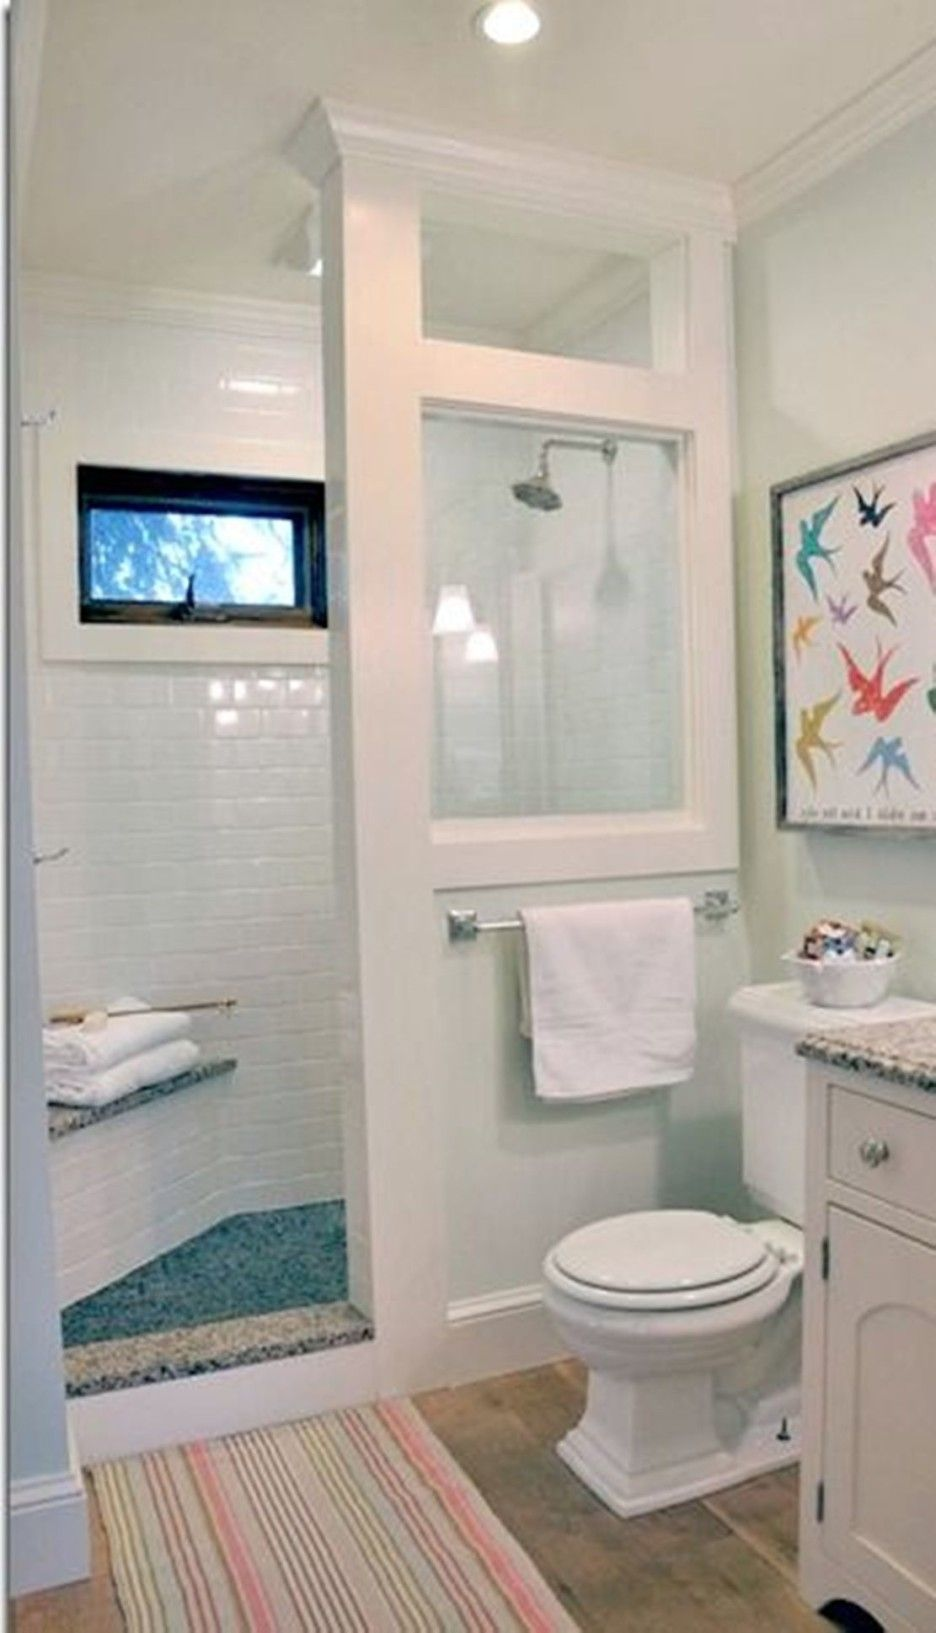 Bathroom Fresh Design For Small Bathrooms With White Shower Stall